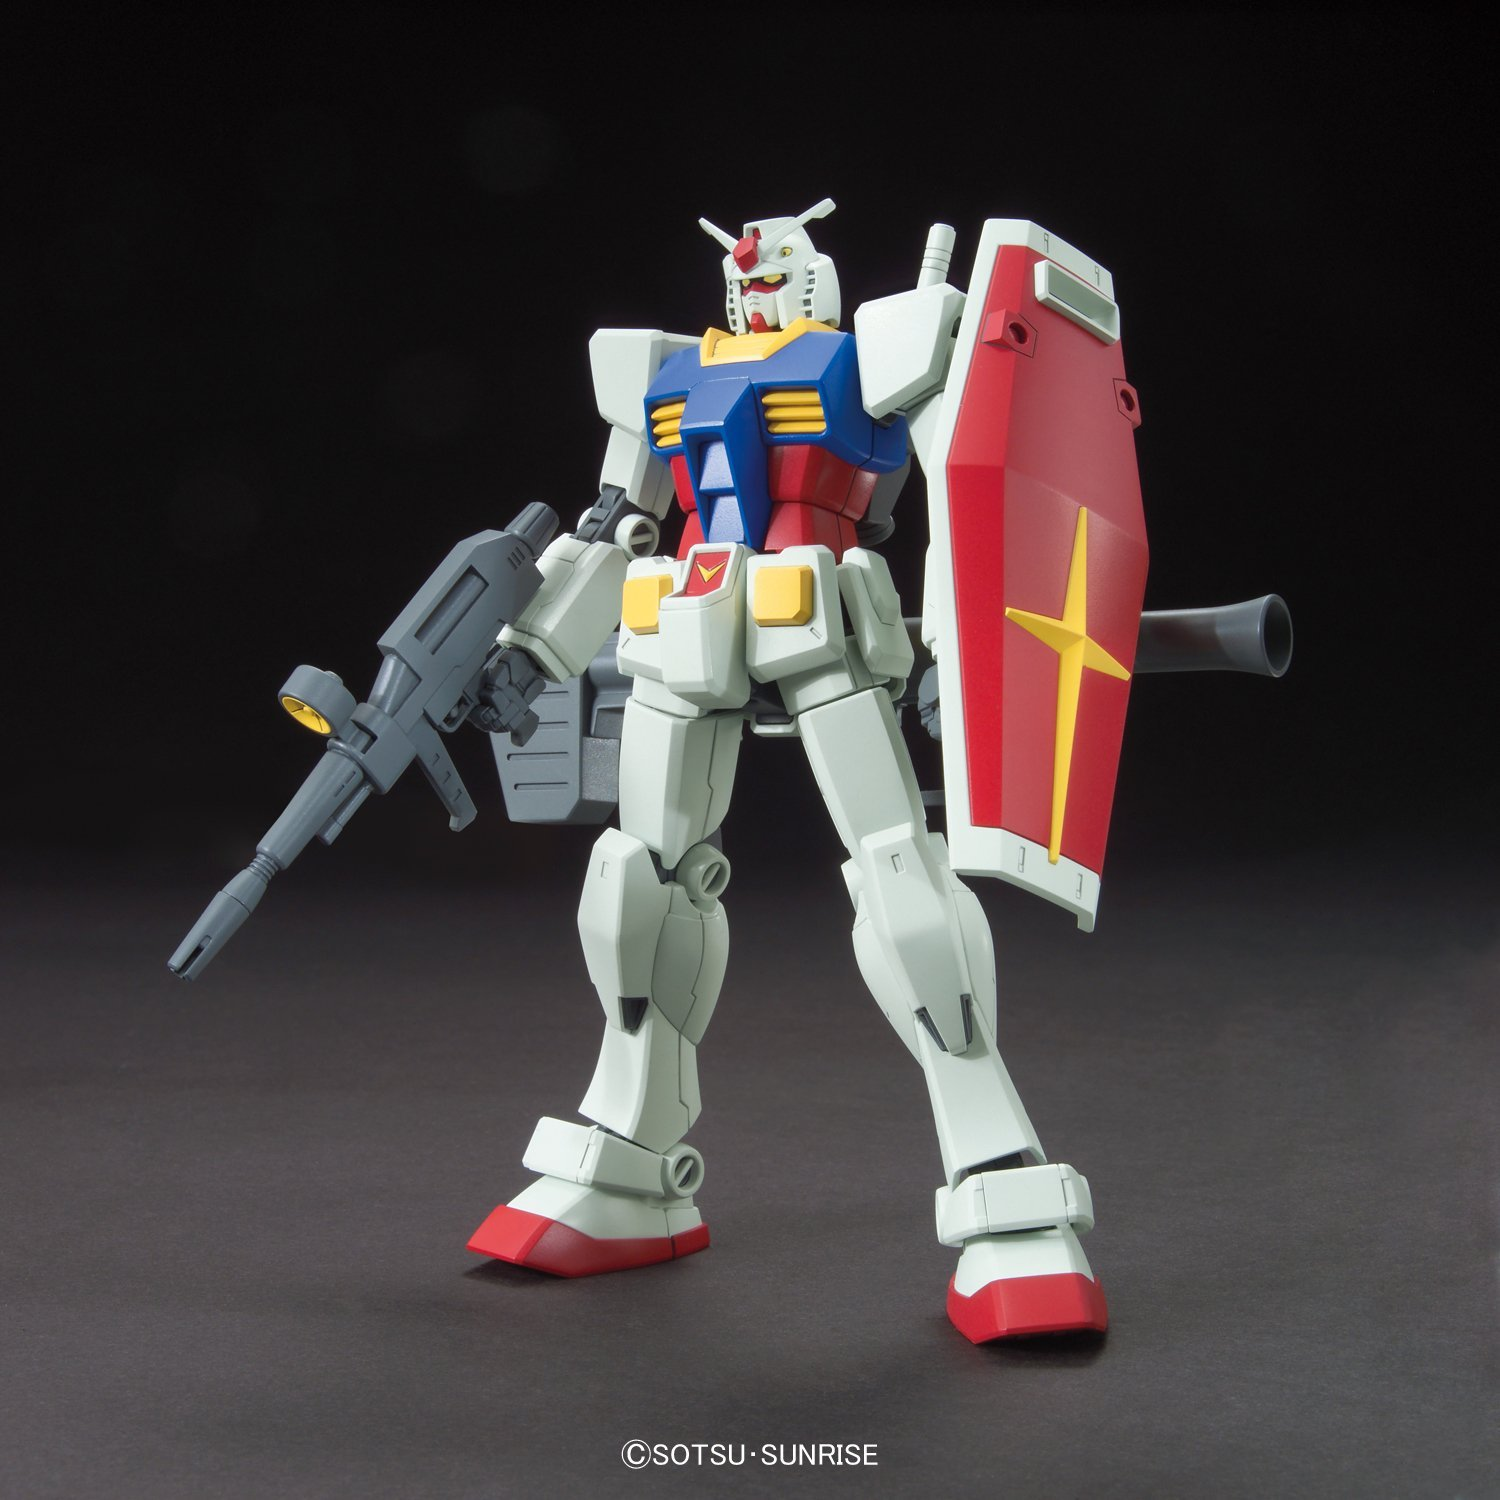 5159HGUC REVIVE 1/144 RX-78-2 ガンダム [Gundam] 0196716 5057403 4543112967169 4573102574039